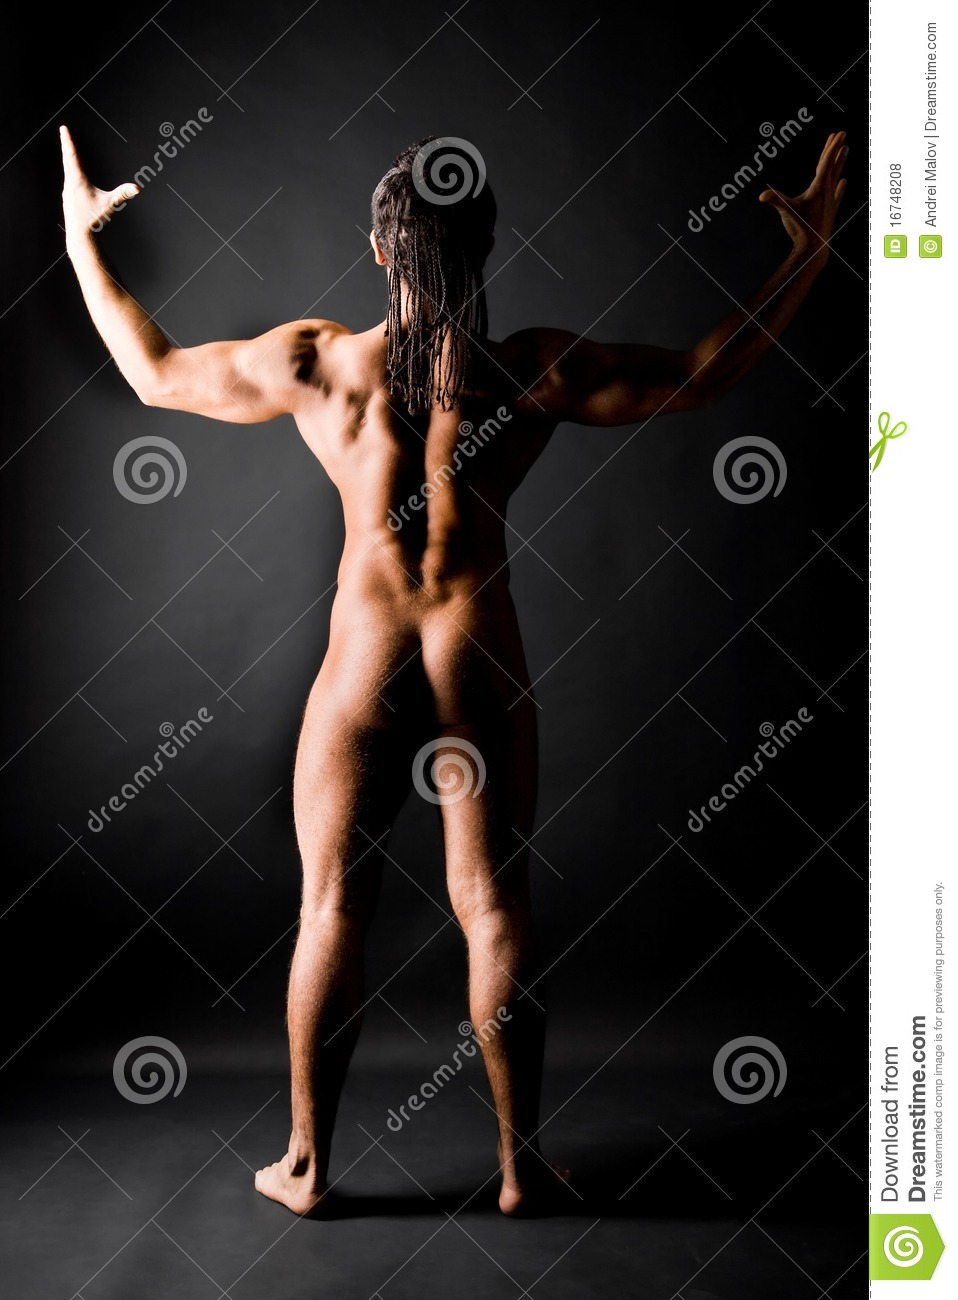 Dude with dreads naked